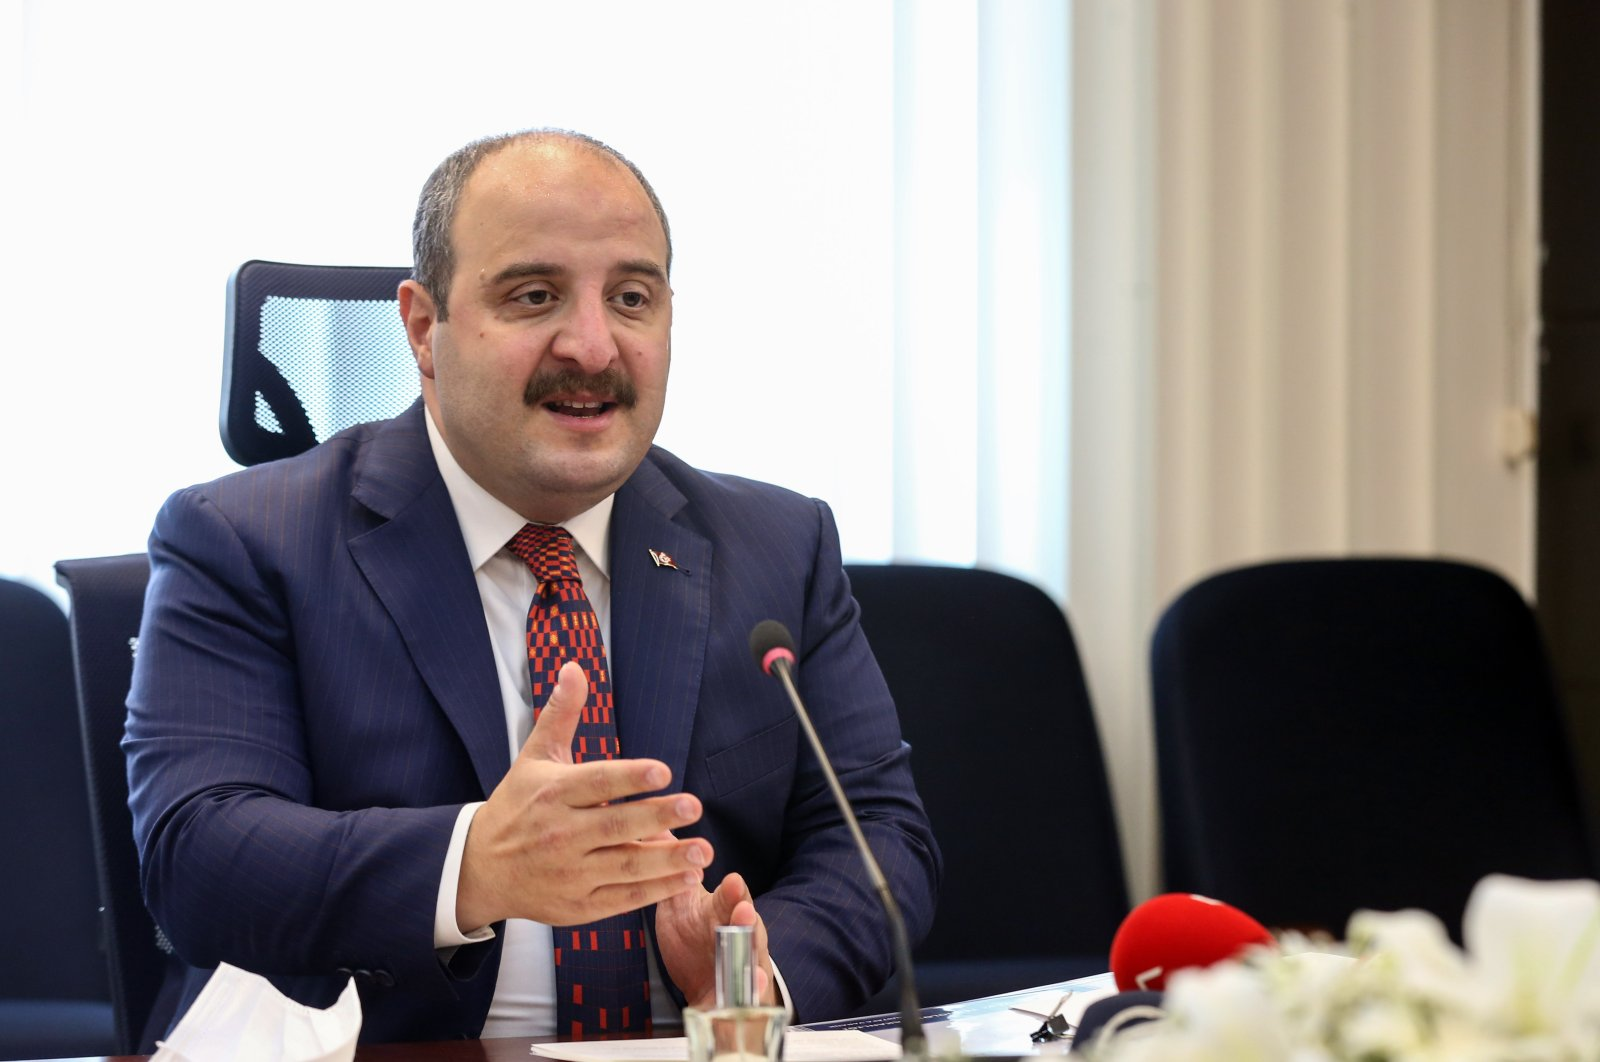 Industry and Technology Minister Mustafa Varank attends a videoconference call at the Ministry of Industry and Technology in Ankara, Turkey, Oct. 2, 2020. (DHA Photo)